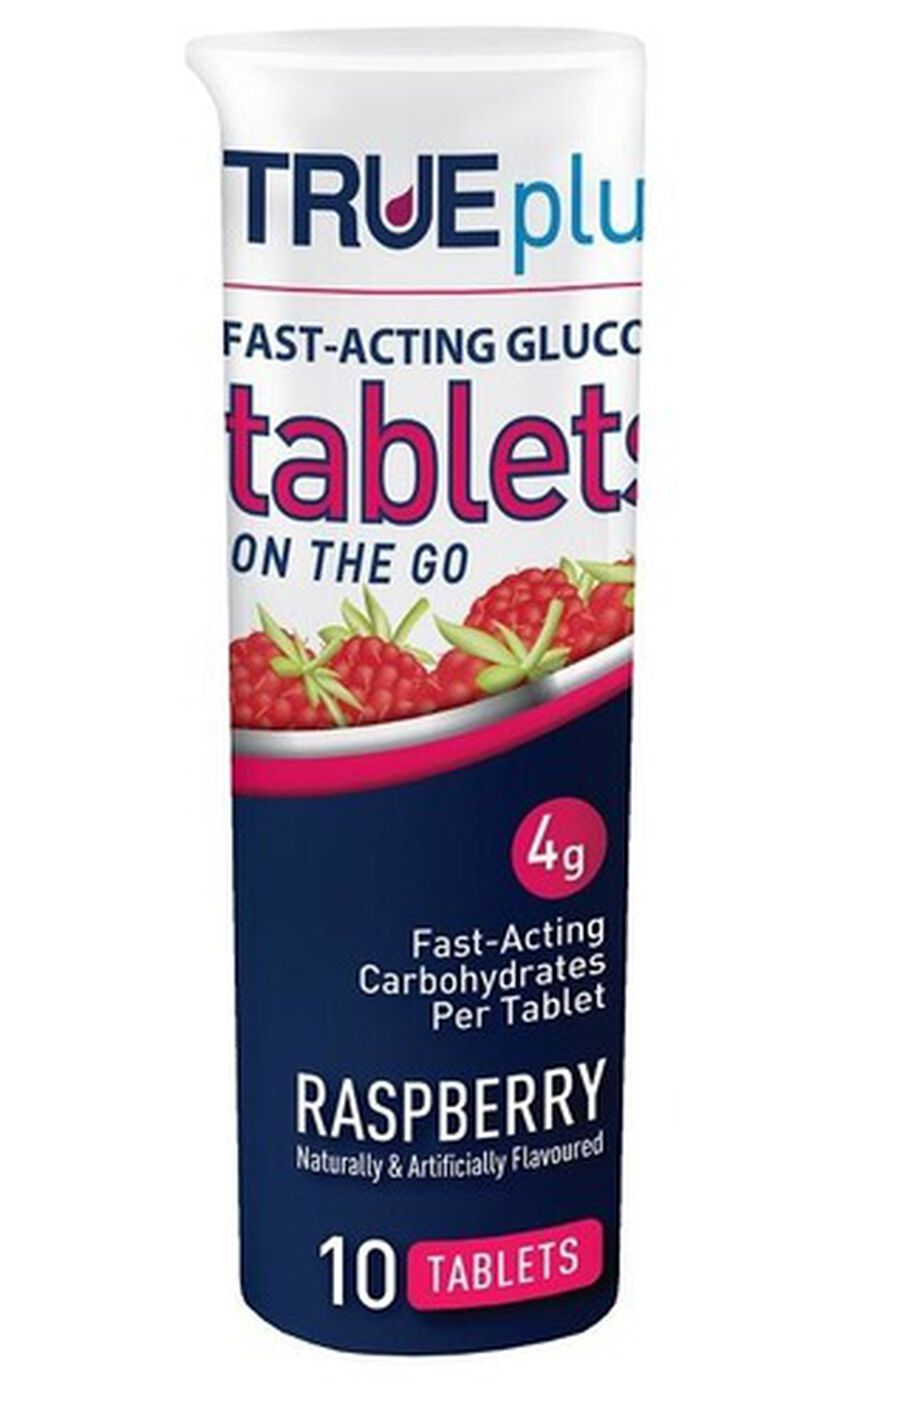 TRUEplus Glucose Tablets 10 ct- Raspberry, , large image number 2